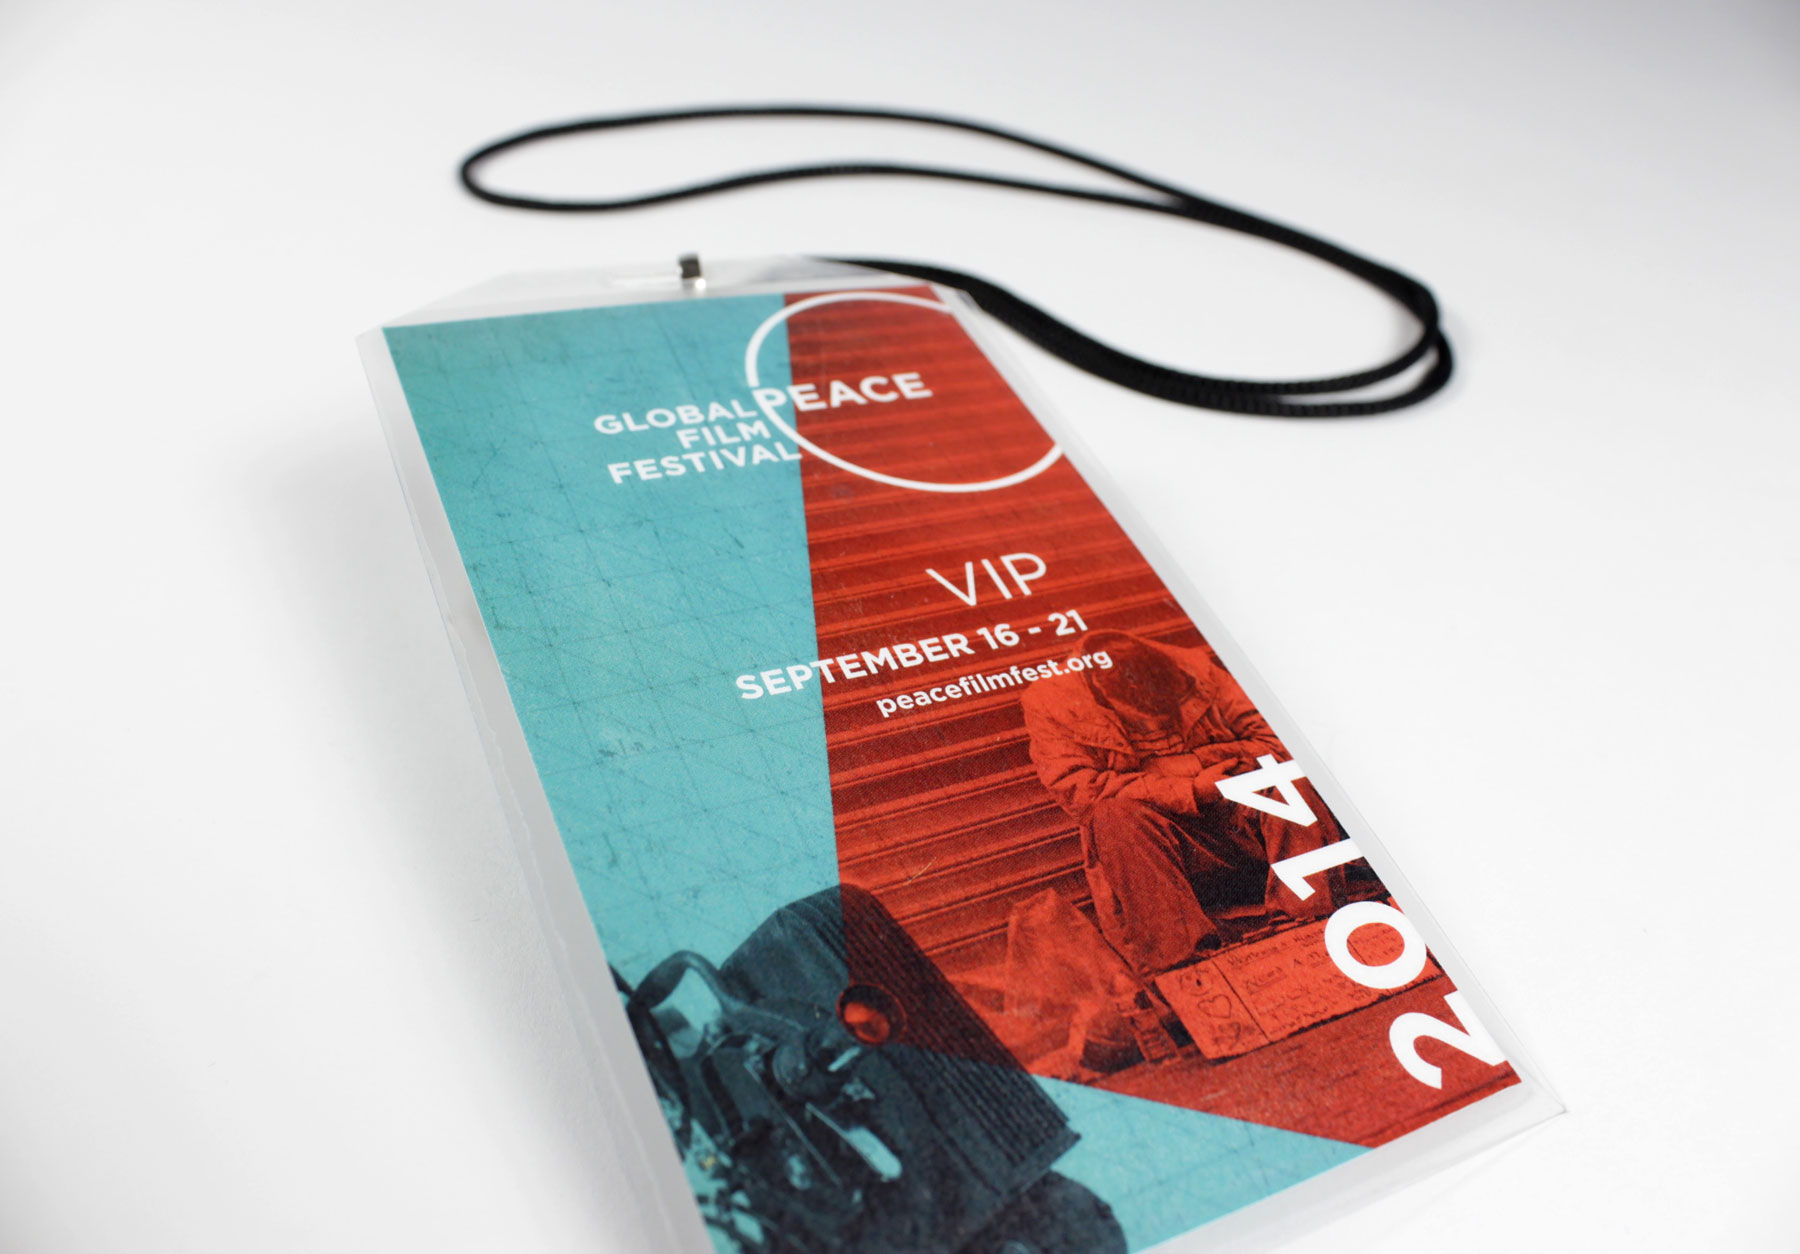 Global Peace Film Festival VIP Pass